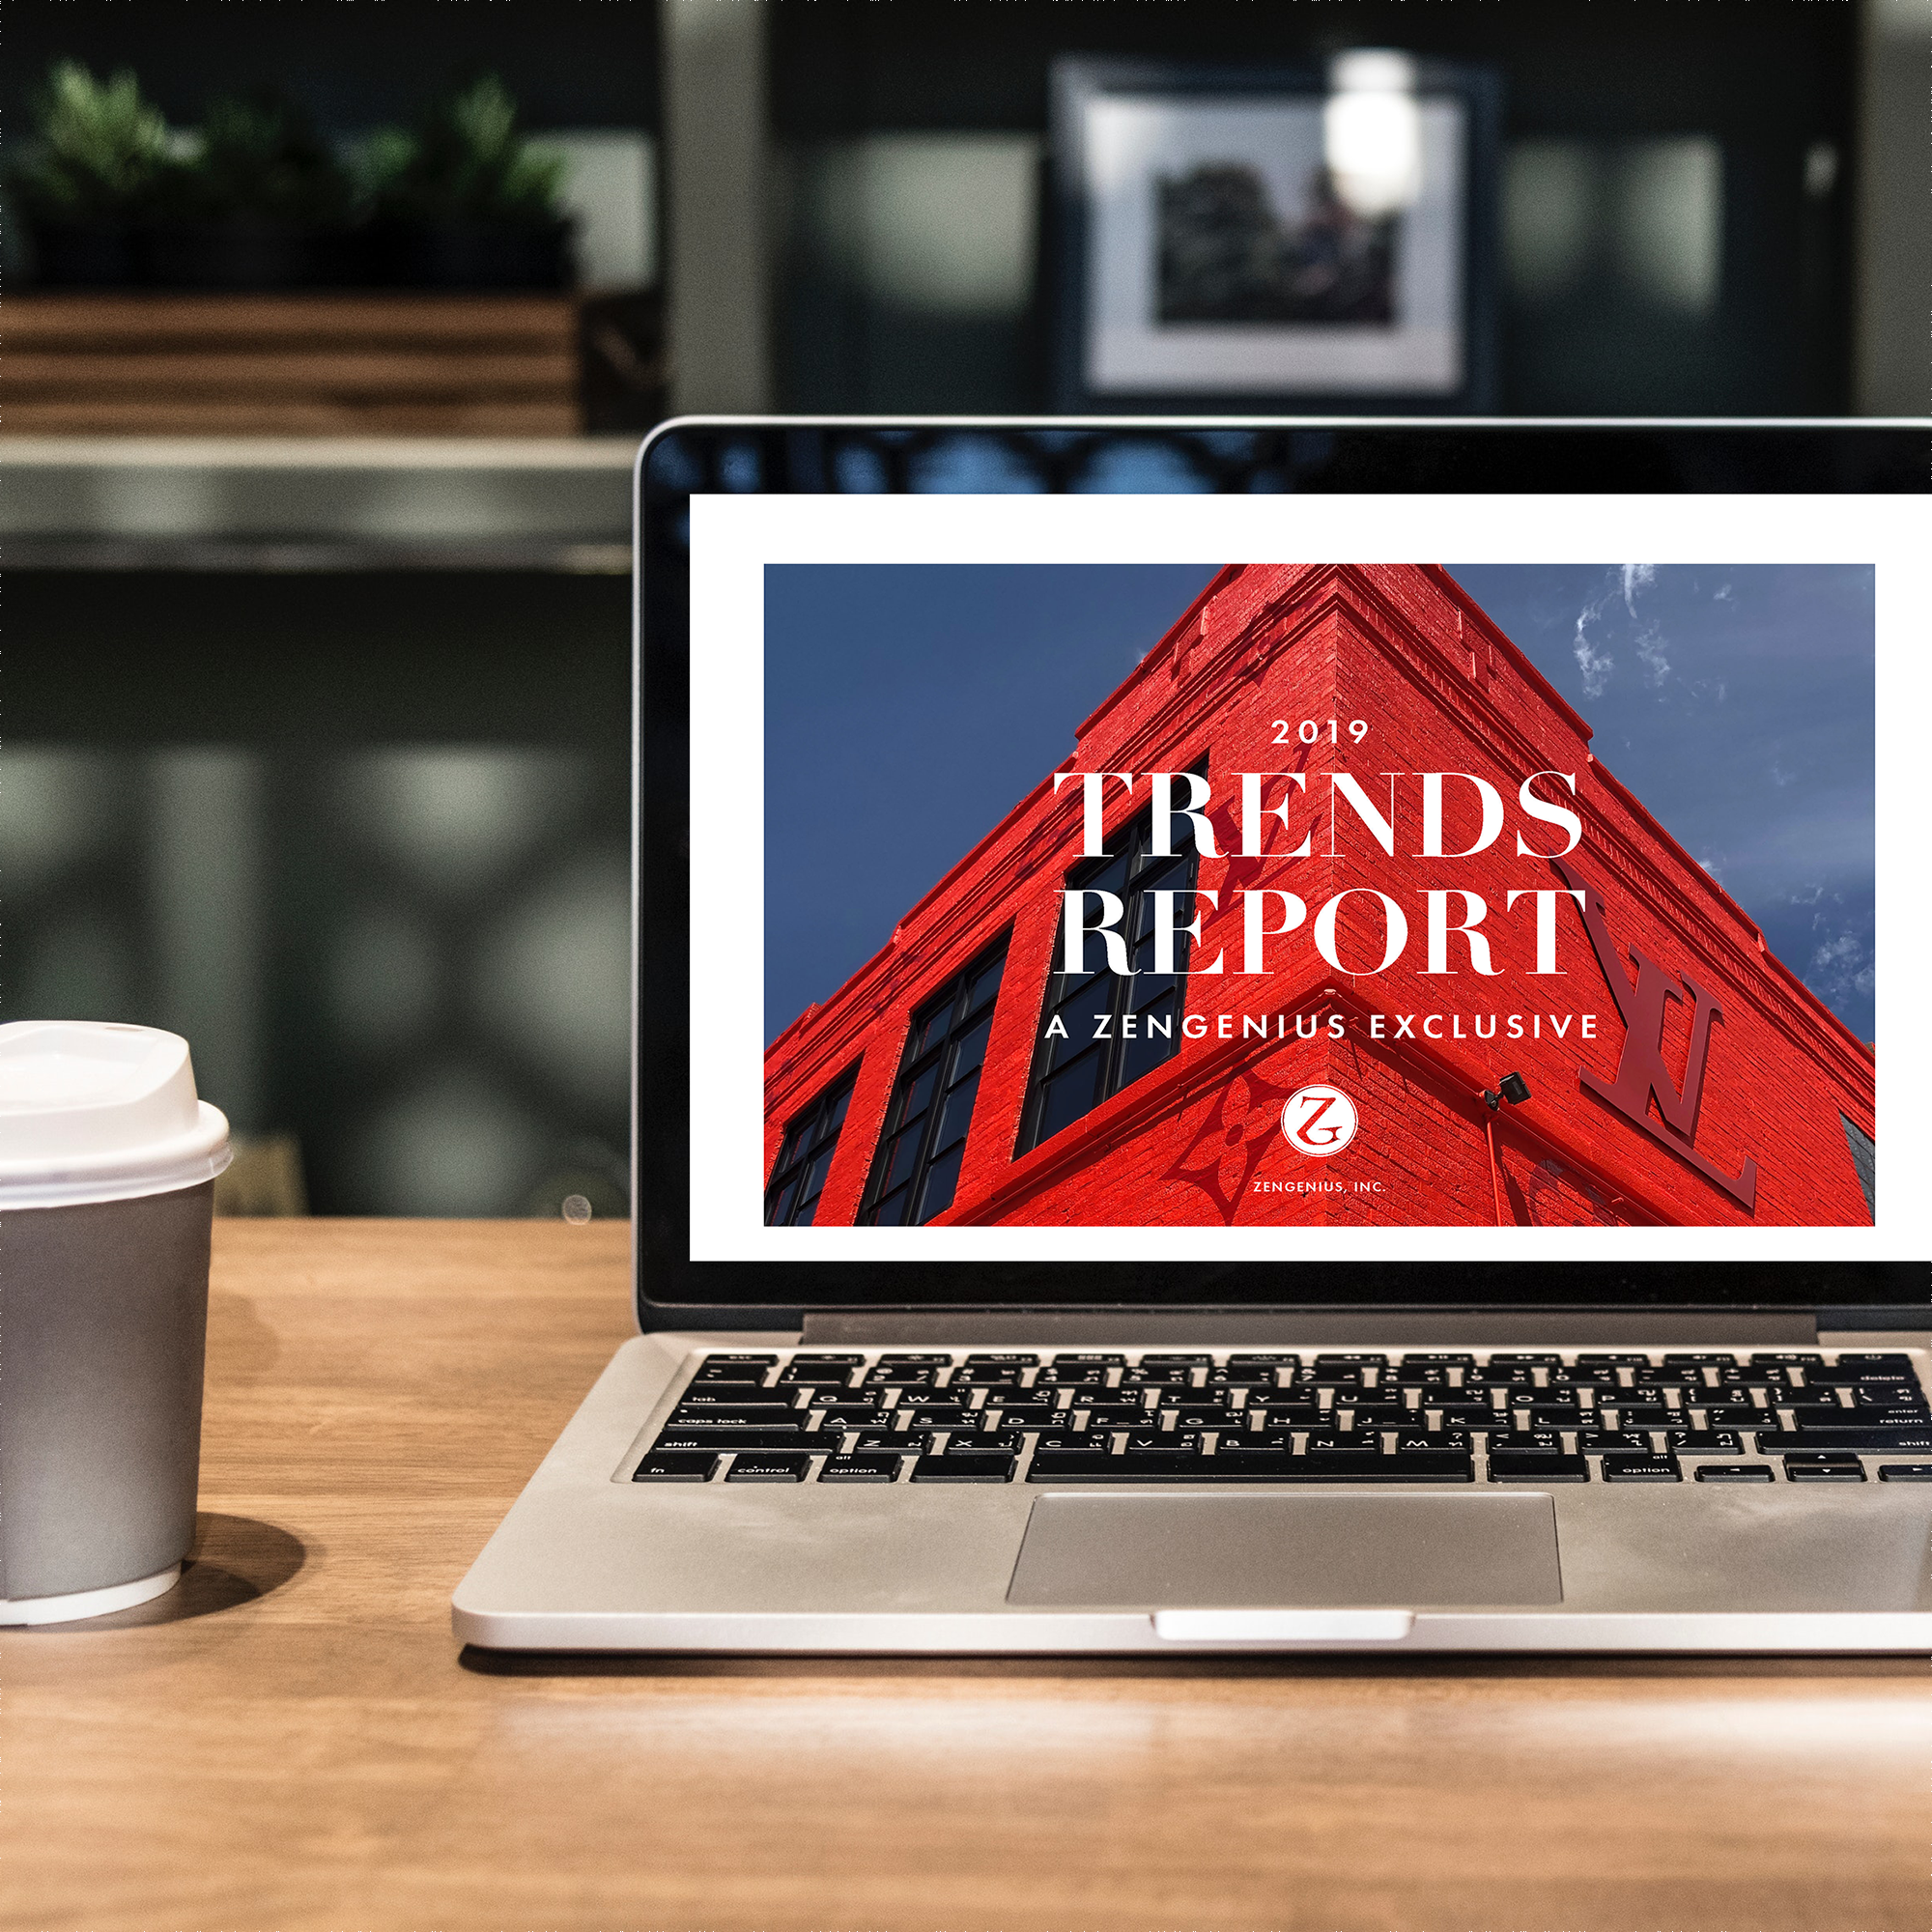 - Click the button and enter the code 2019TRENDSFREE at checkout to download your complimentary copy of our 2019 Trends Report.Browse through more than 125 pages to experience the energy of the industry and get ZenGenius' take on the latest trends seen in the world of retail and brand activations.